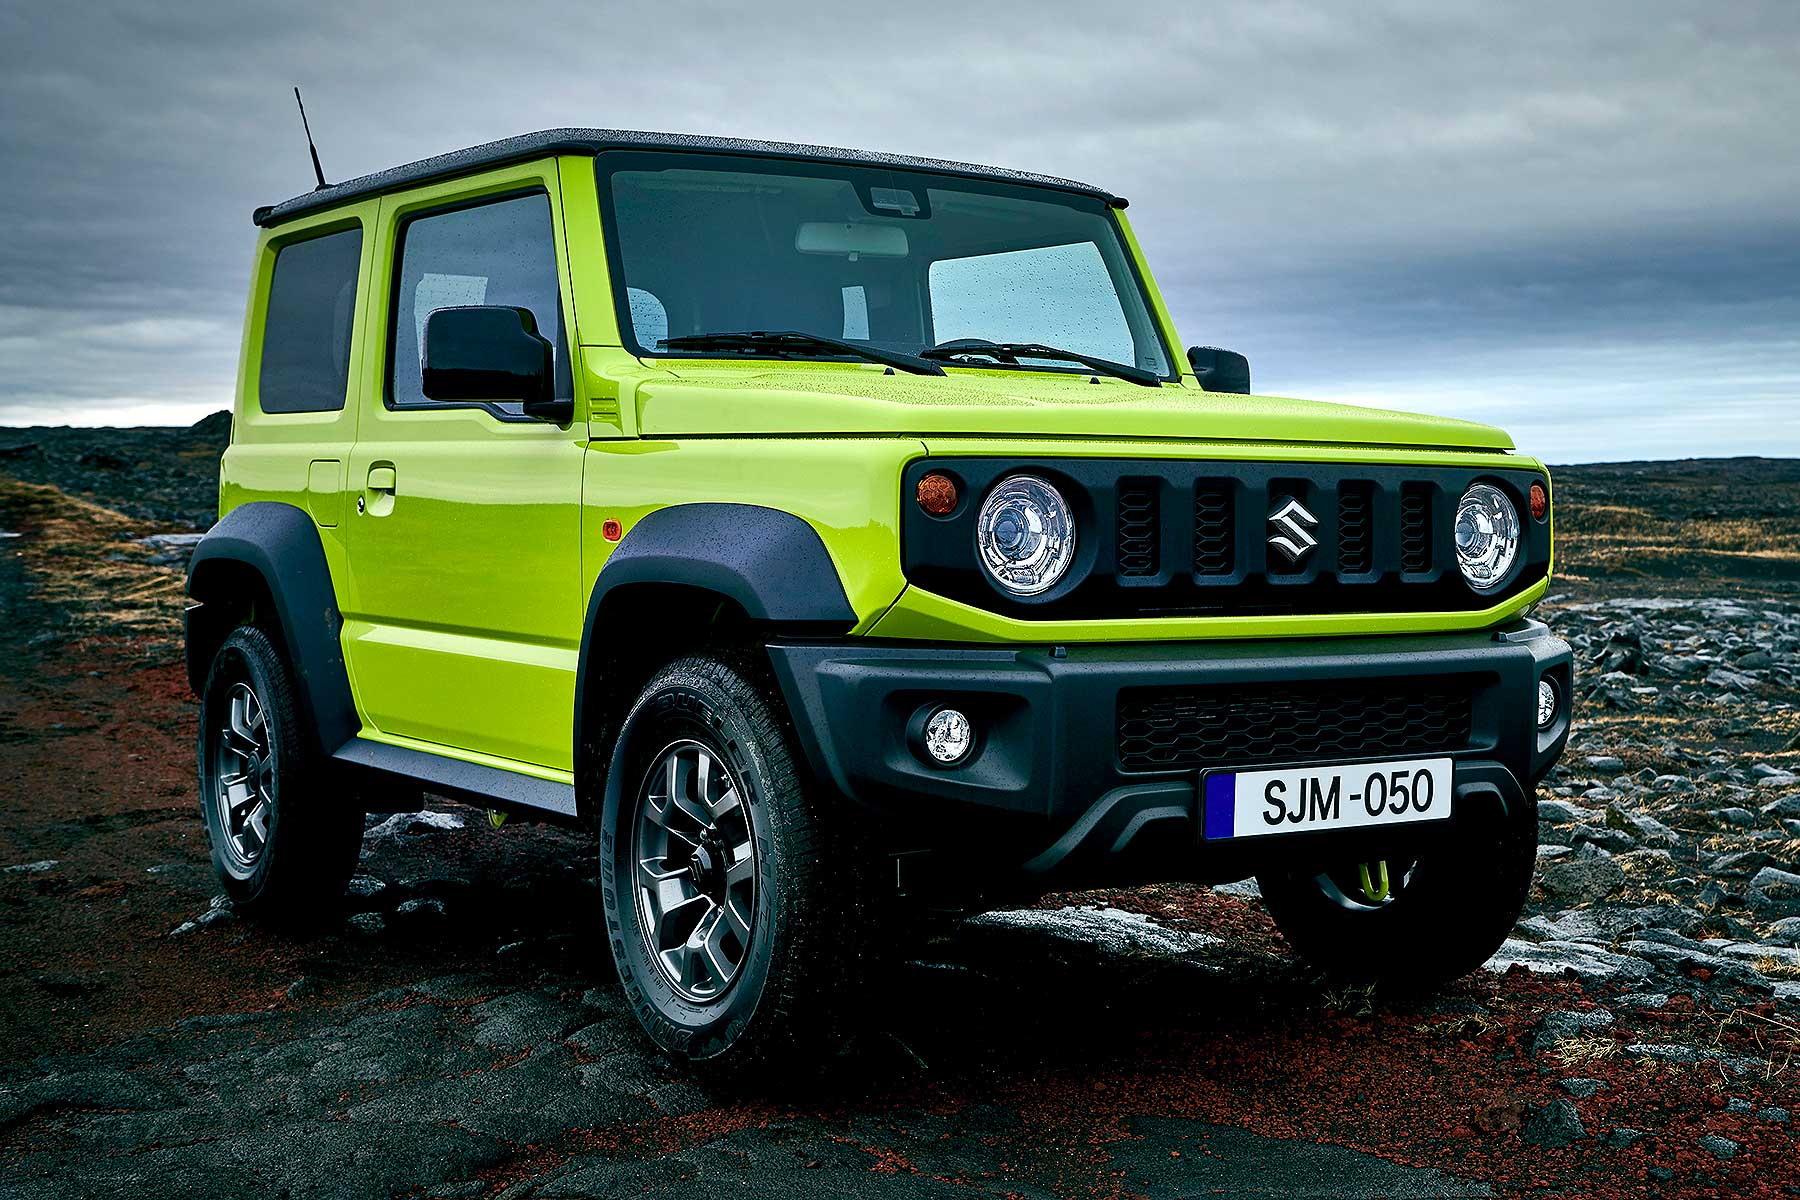 new 2019 suzuki jimny prices and specs motoring research. Black Bedroom Furniture Sets. Home Design Ideas